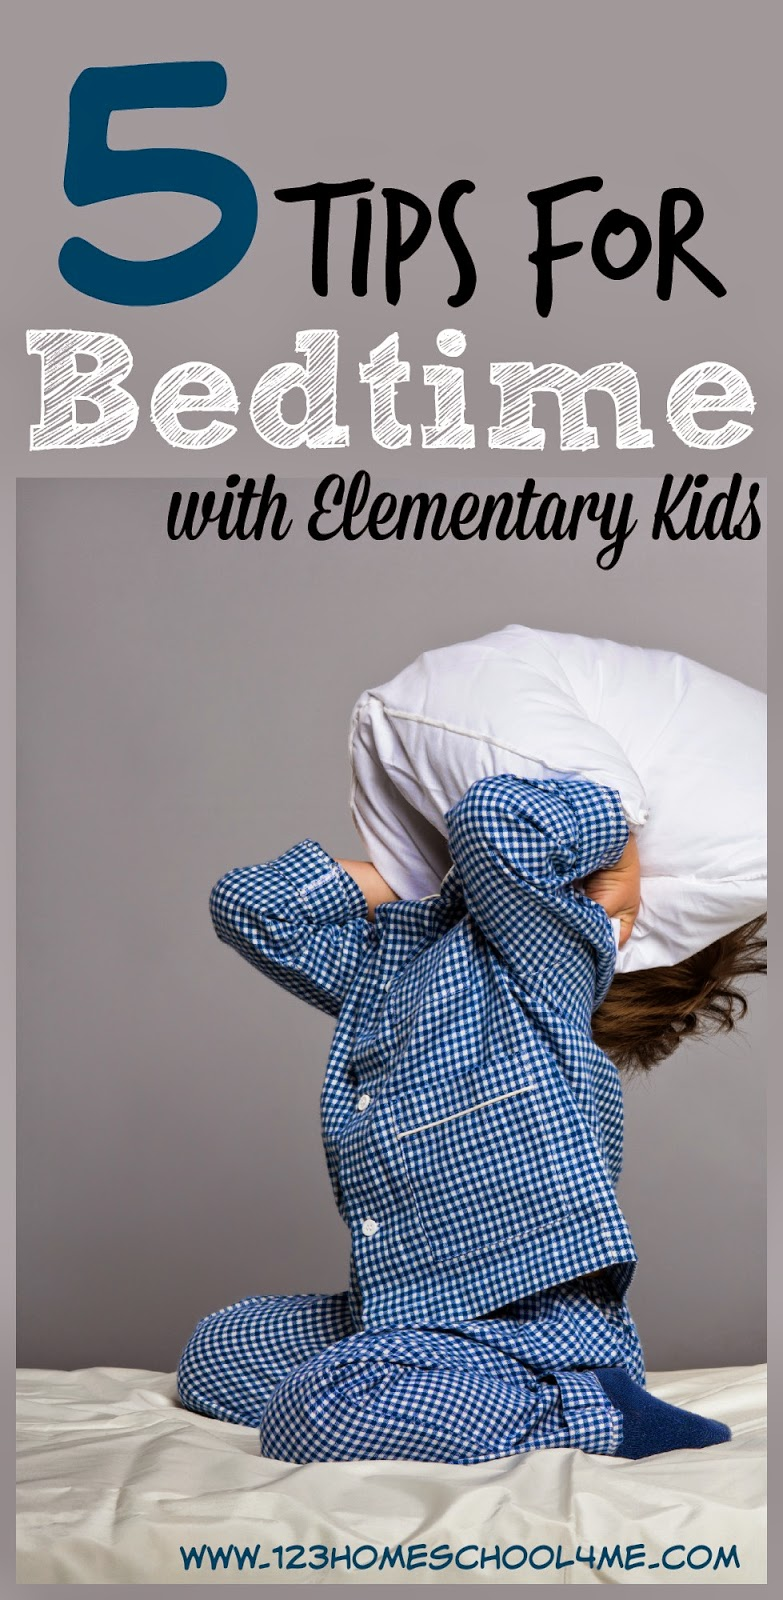 5 Tips for Bedtime for Elementary Kids! Lots of practical tips and advice including enuresis.